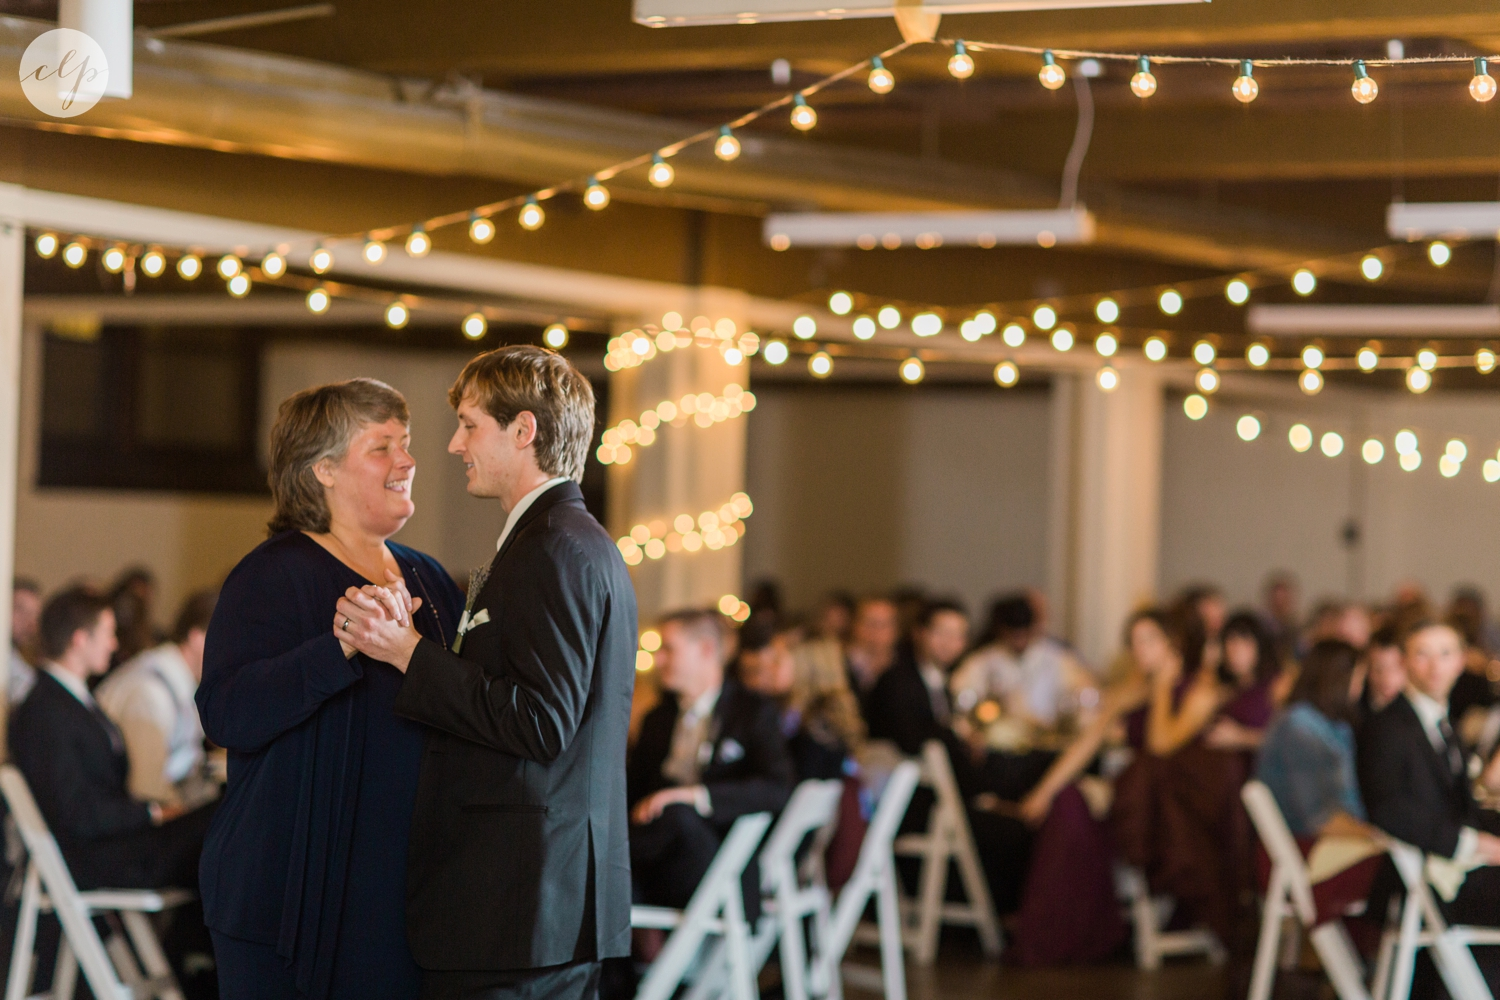 st-louis-missouri-wedding-photographer_5850.jpg